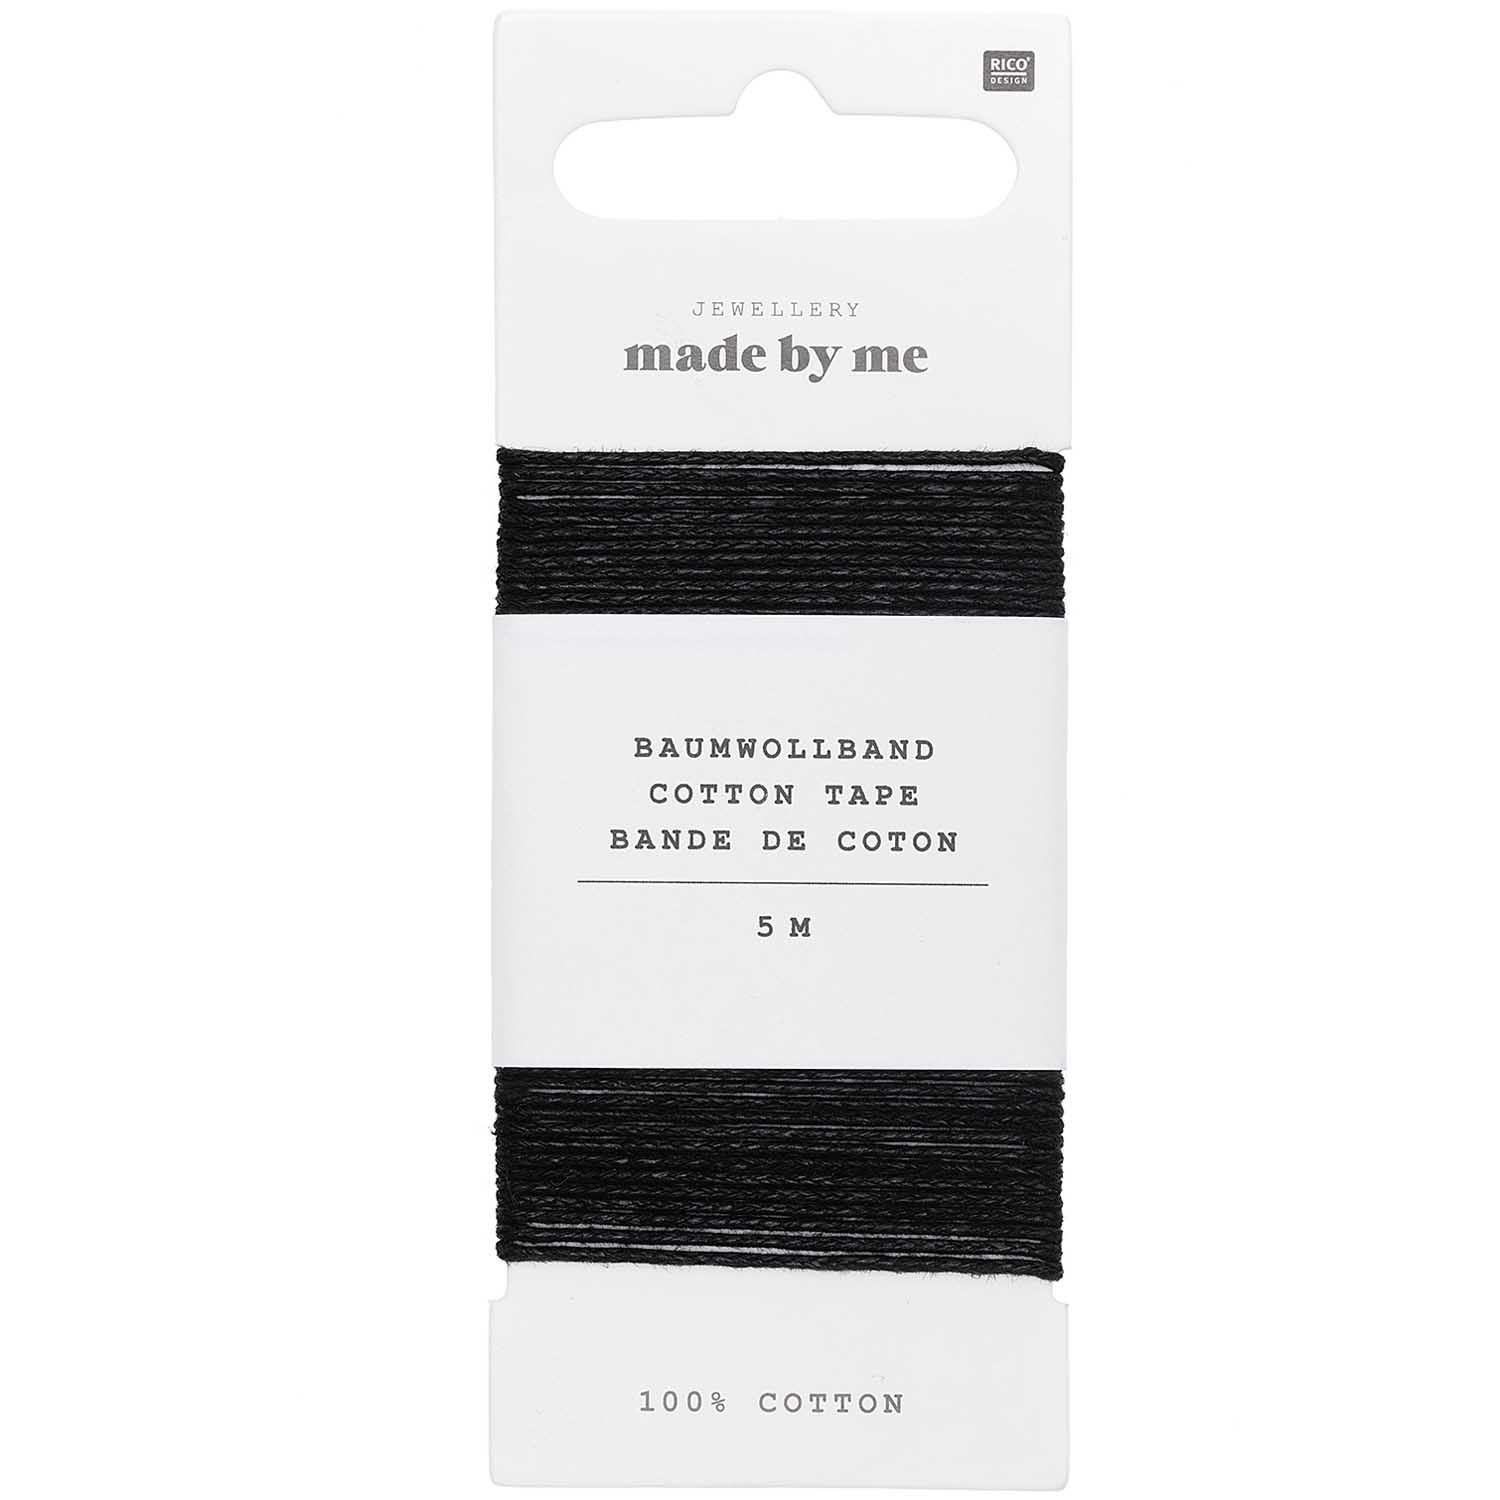 Rico NAY COTTON TAPE, BLACK 1MM X 5M, 100% COTTON